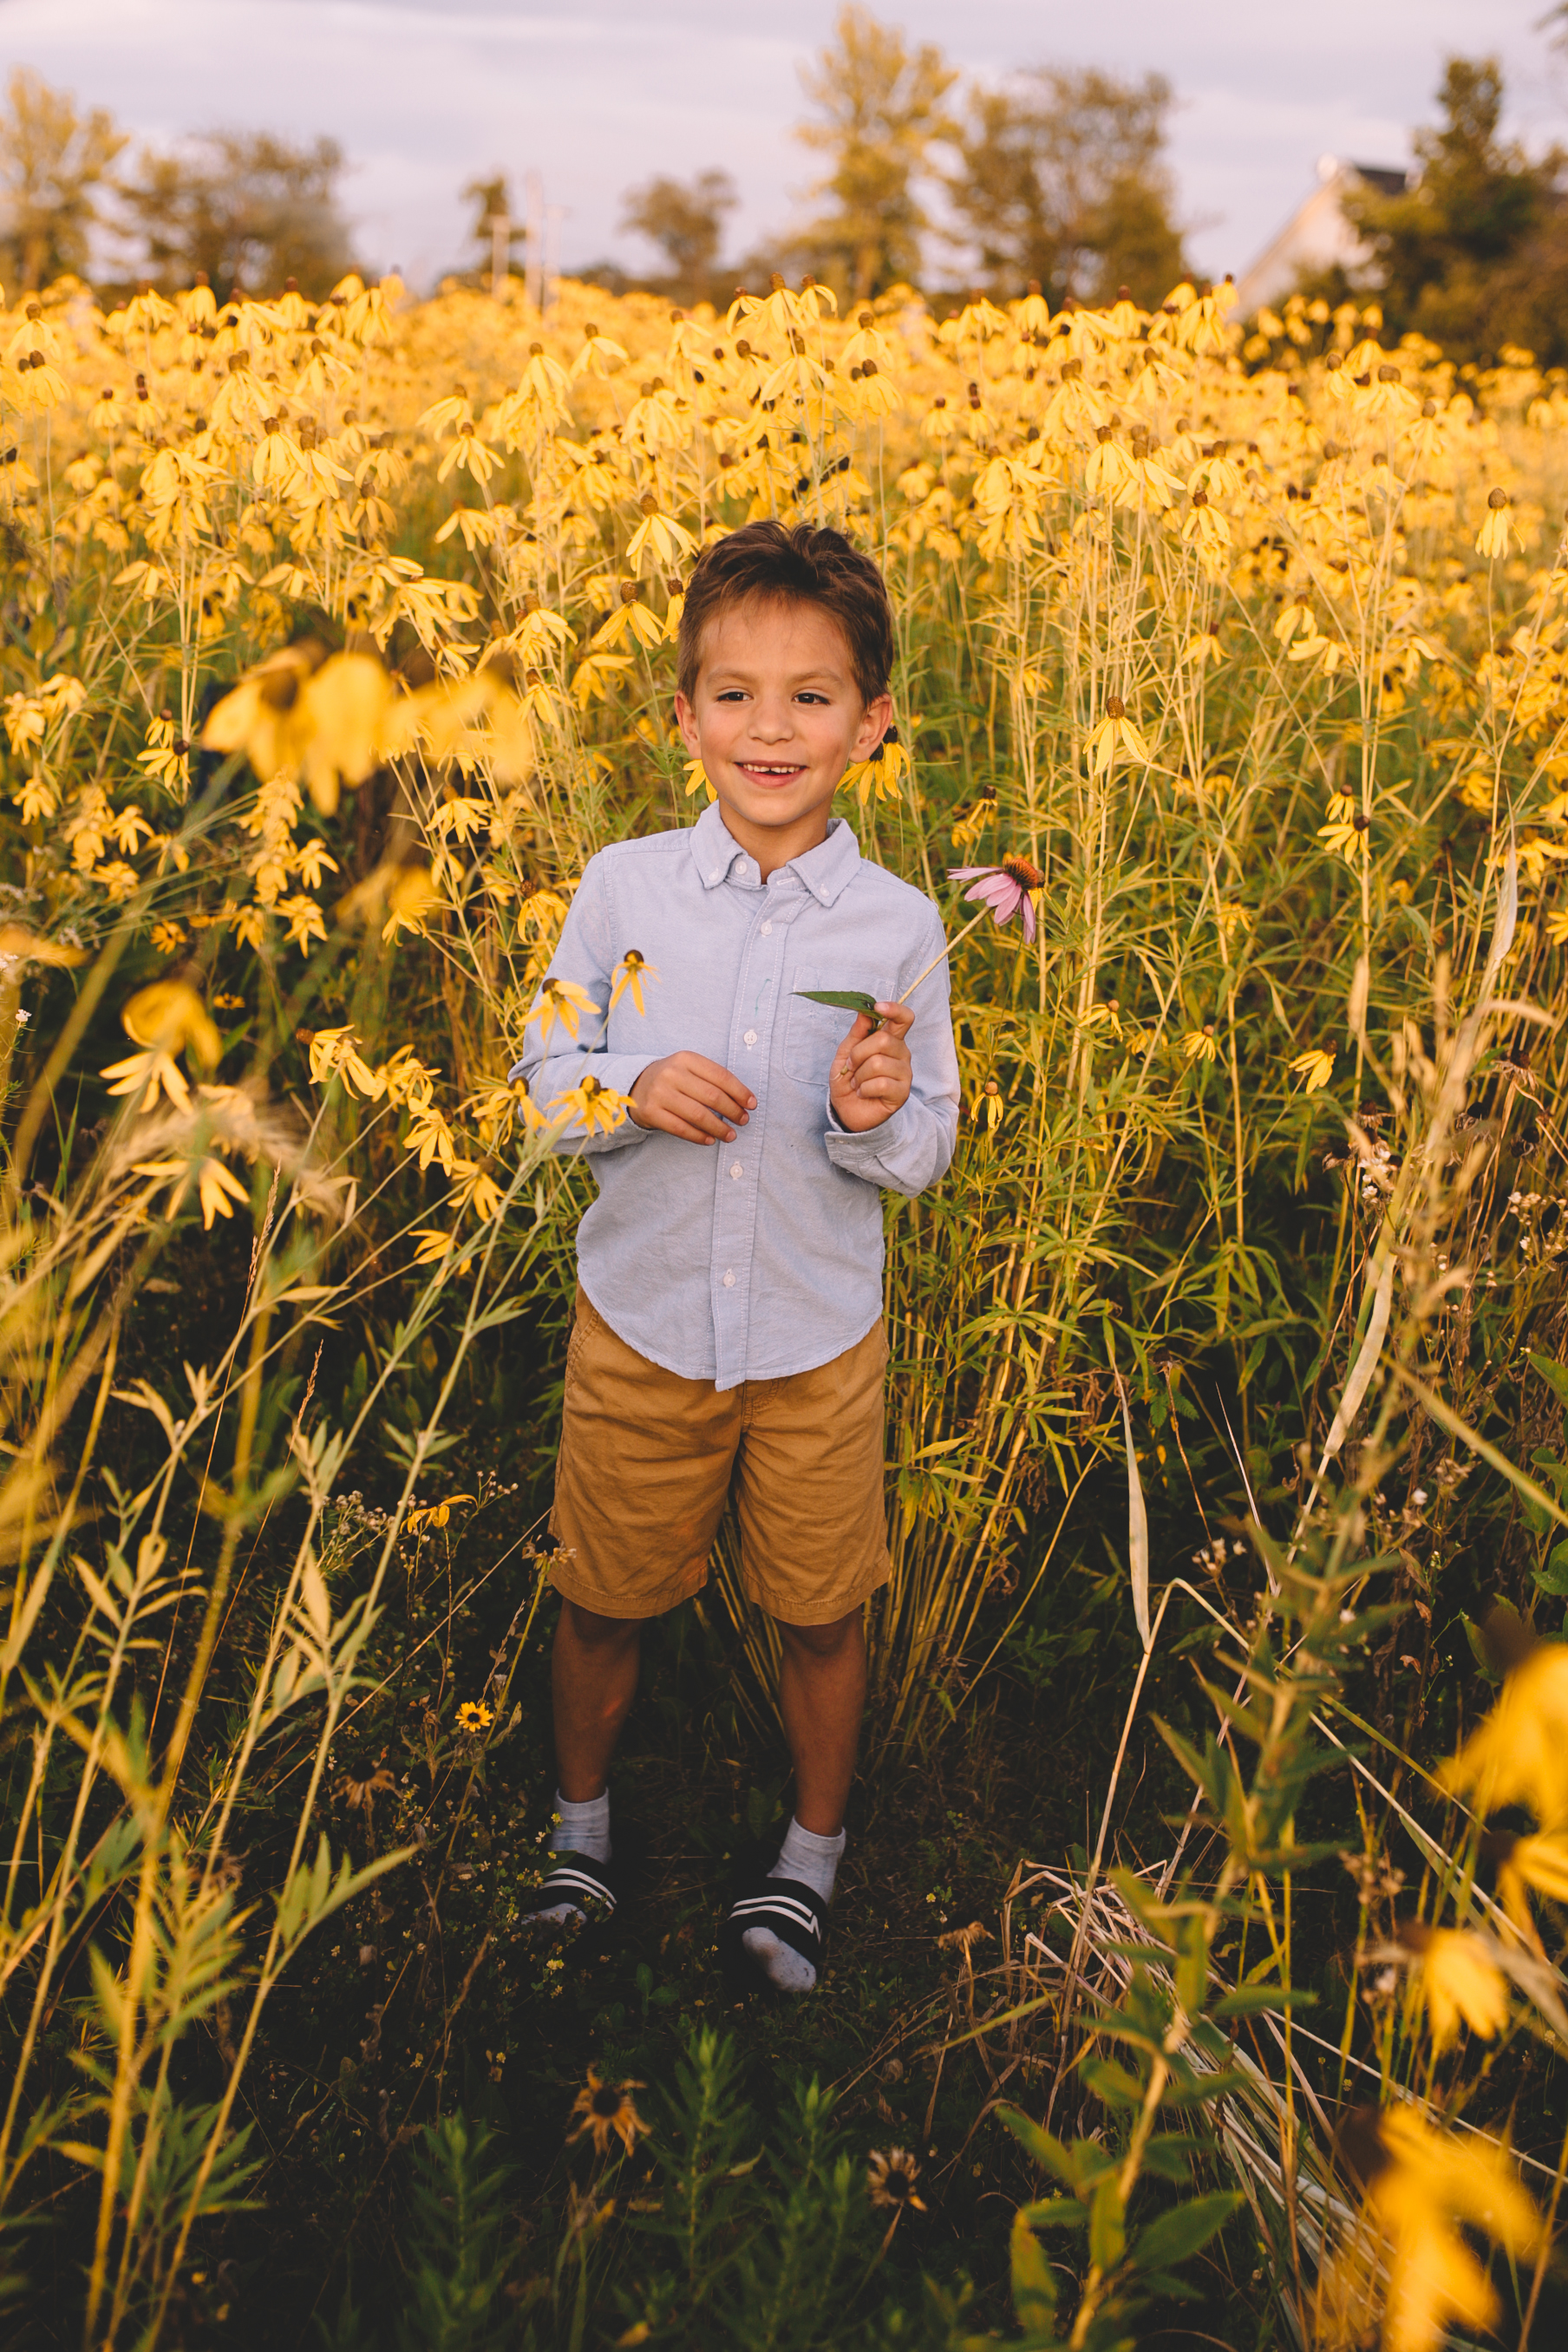 Golden Flower Field Mini Session Indianapolis IN (49 of 58).jpg